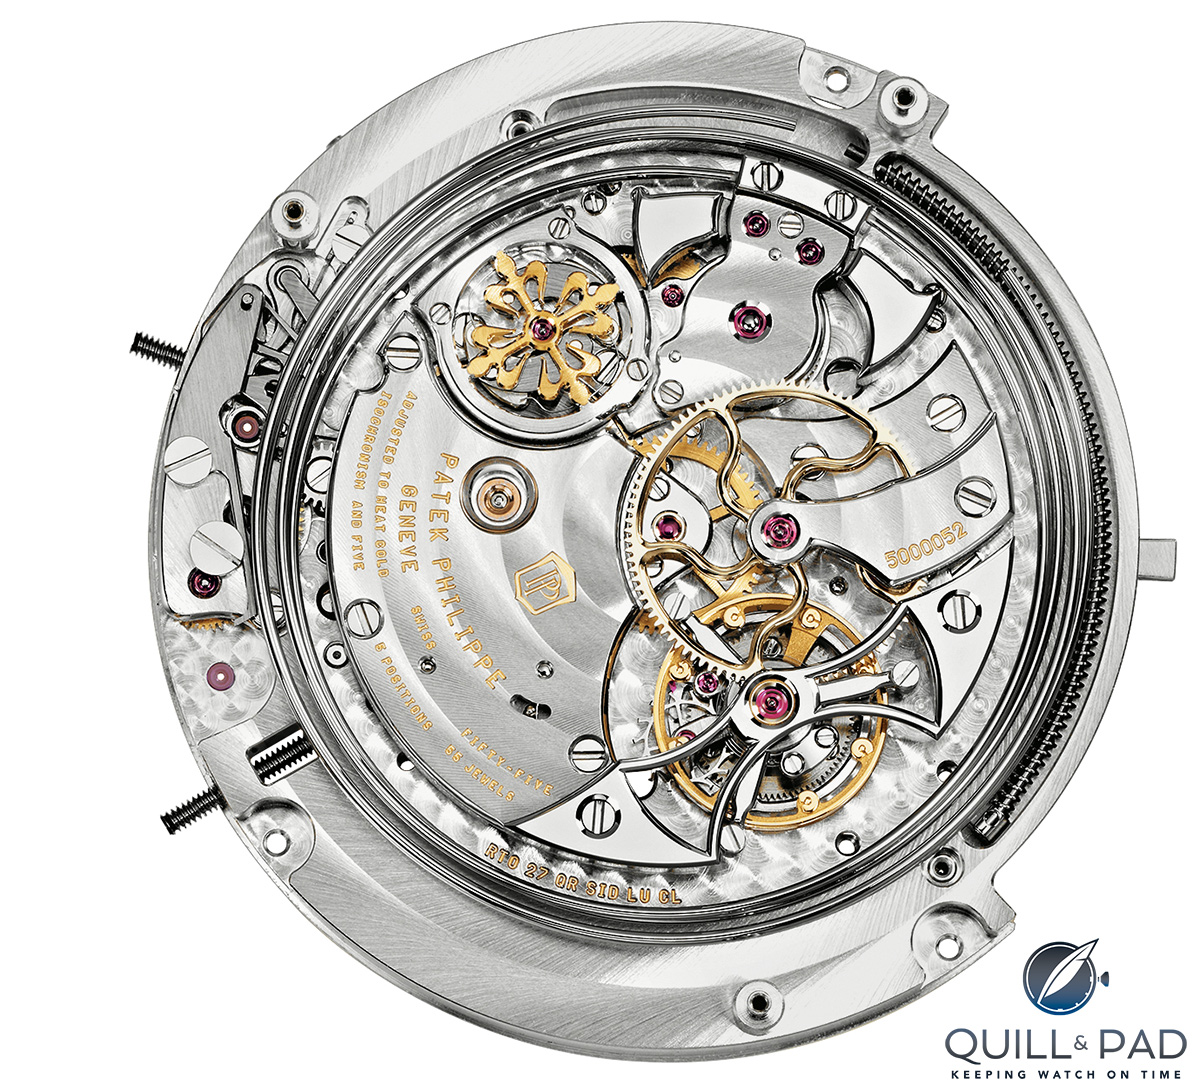 Movement of the Patek Philippe Sky Moon Tourbillon